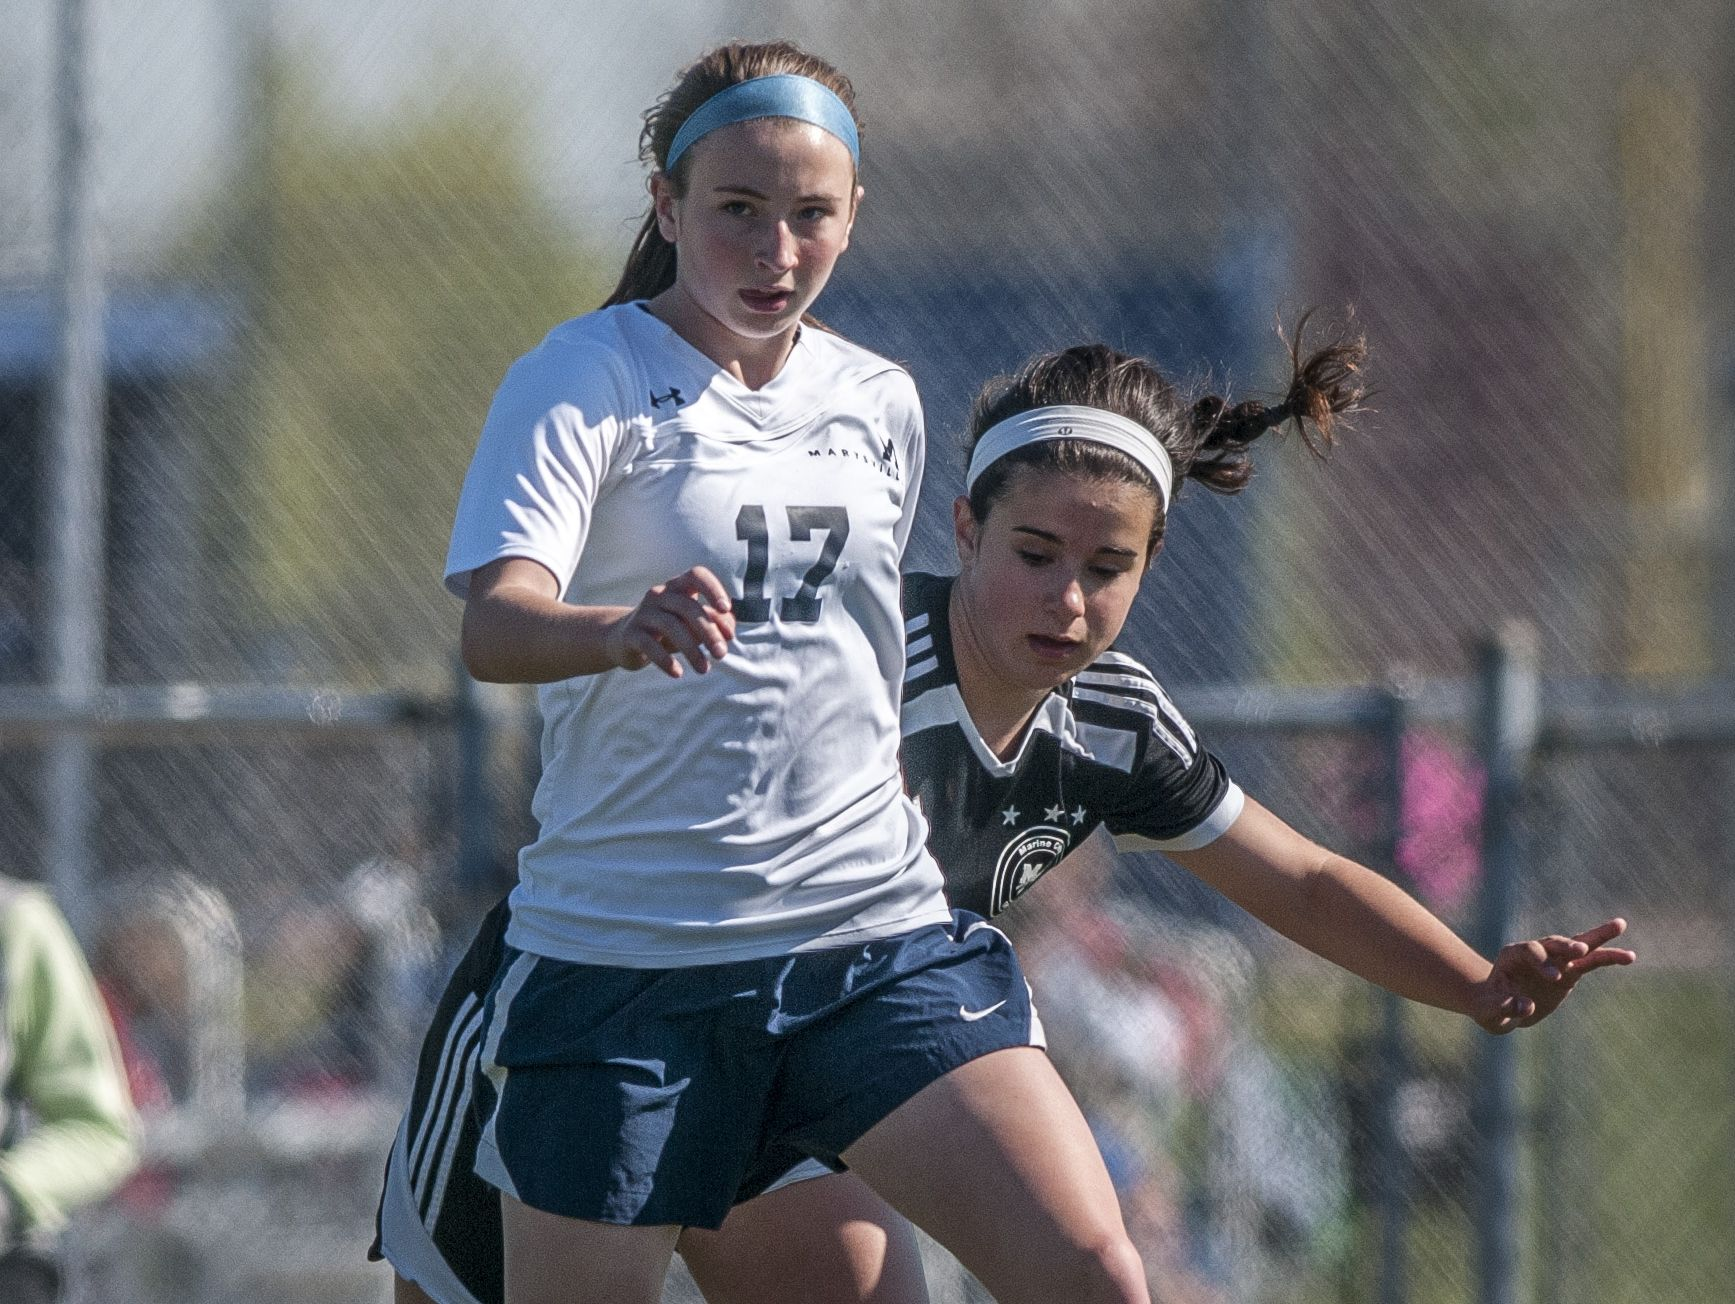 Marysville freshman Breanna Booth passes the ball during a soccer game Wednesday, May 18, 2016 at Marysville High School.